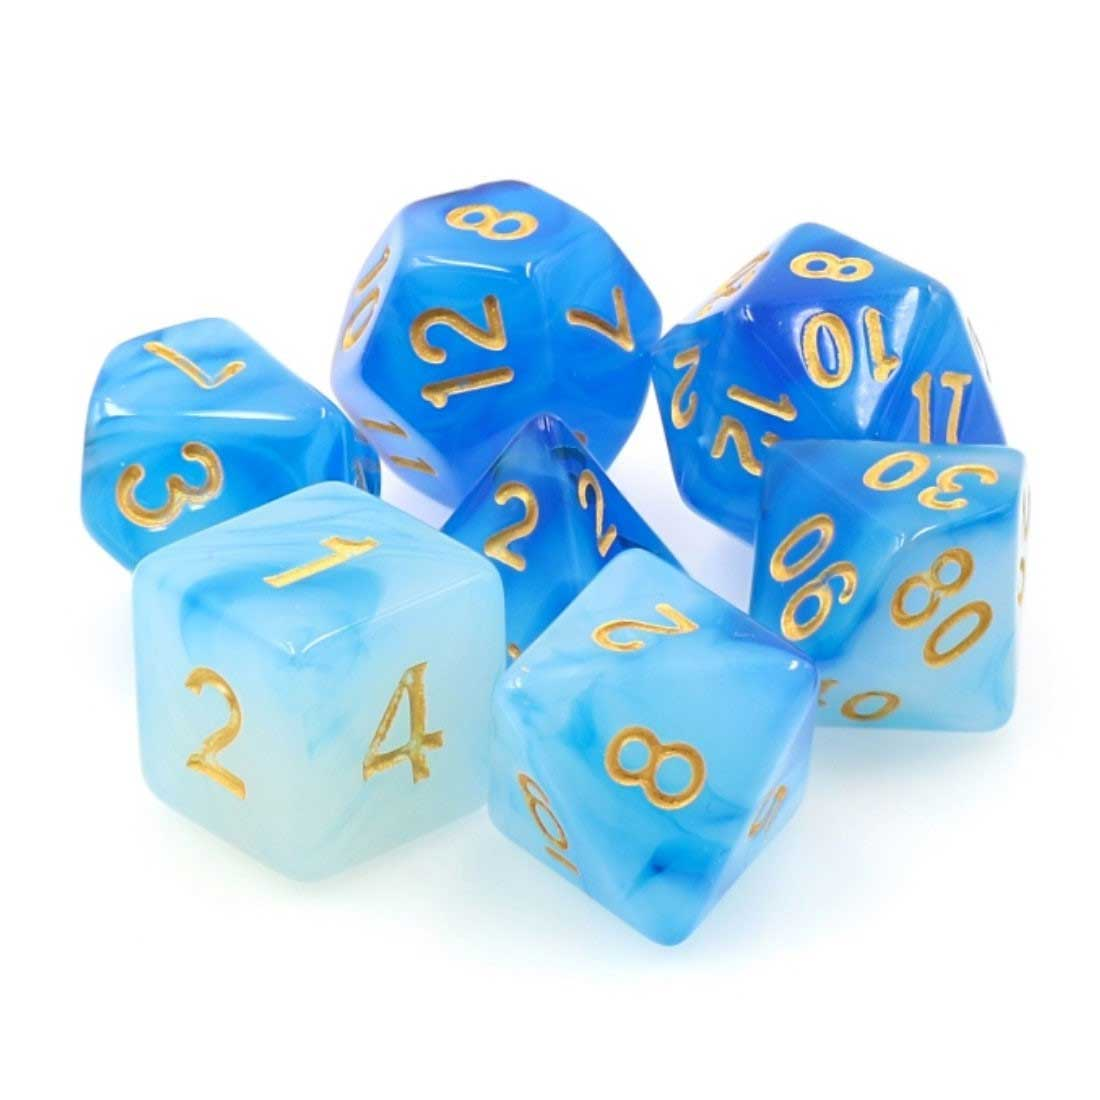 The Dice Place - Poly Dice, Spot Dice and Counters for RPG